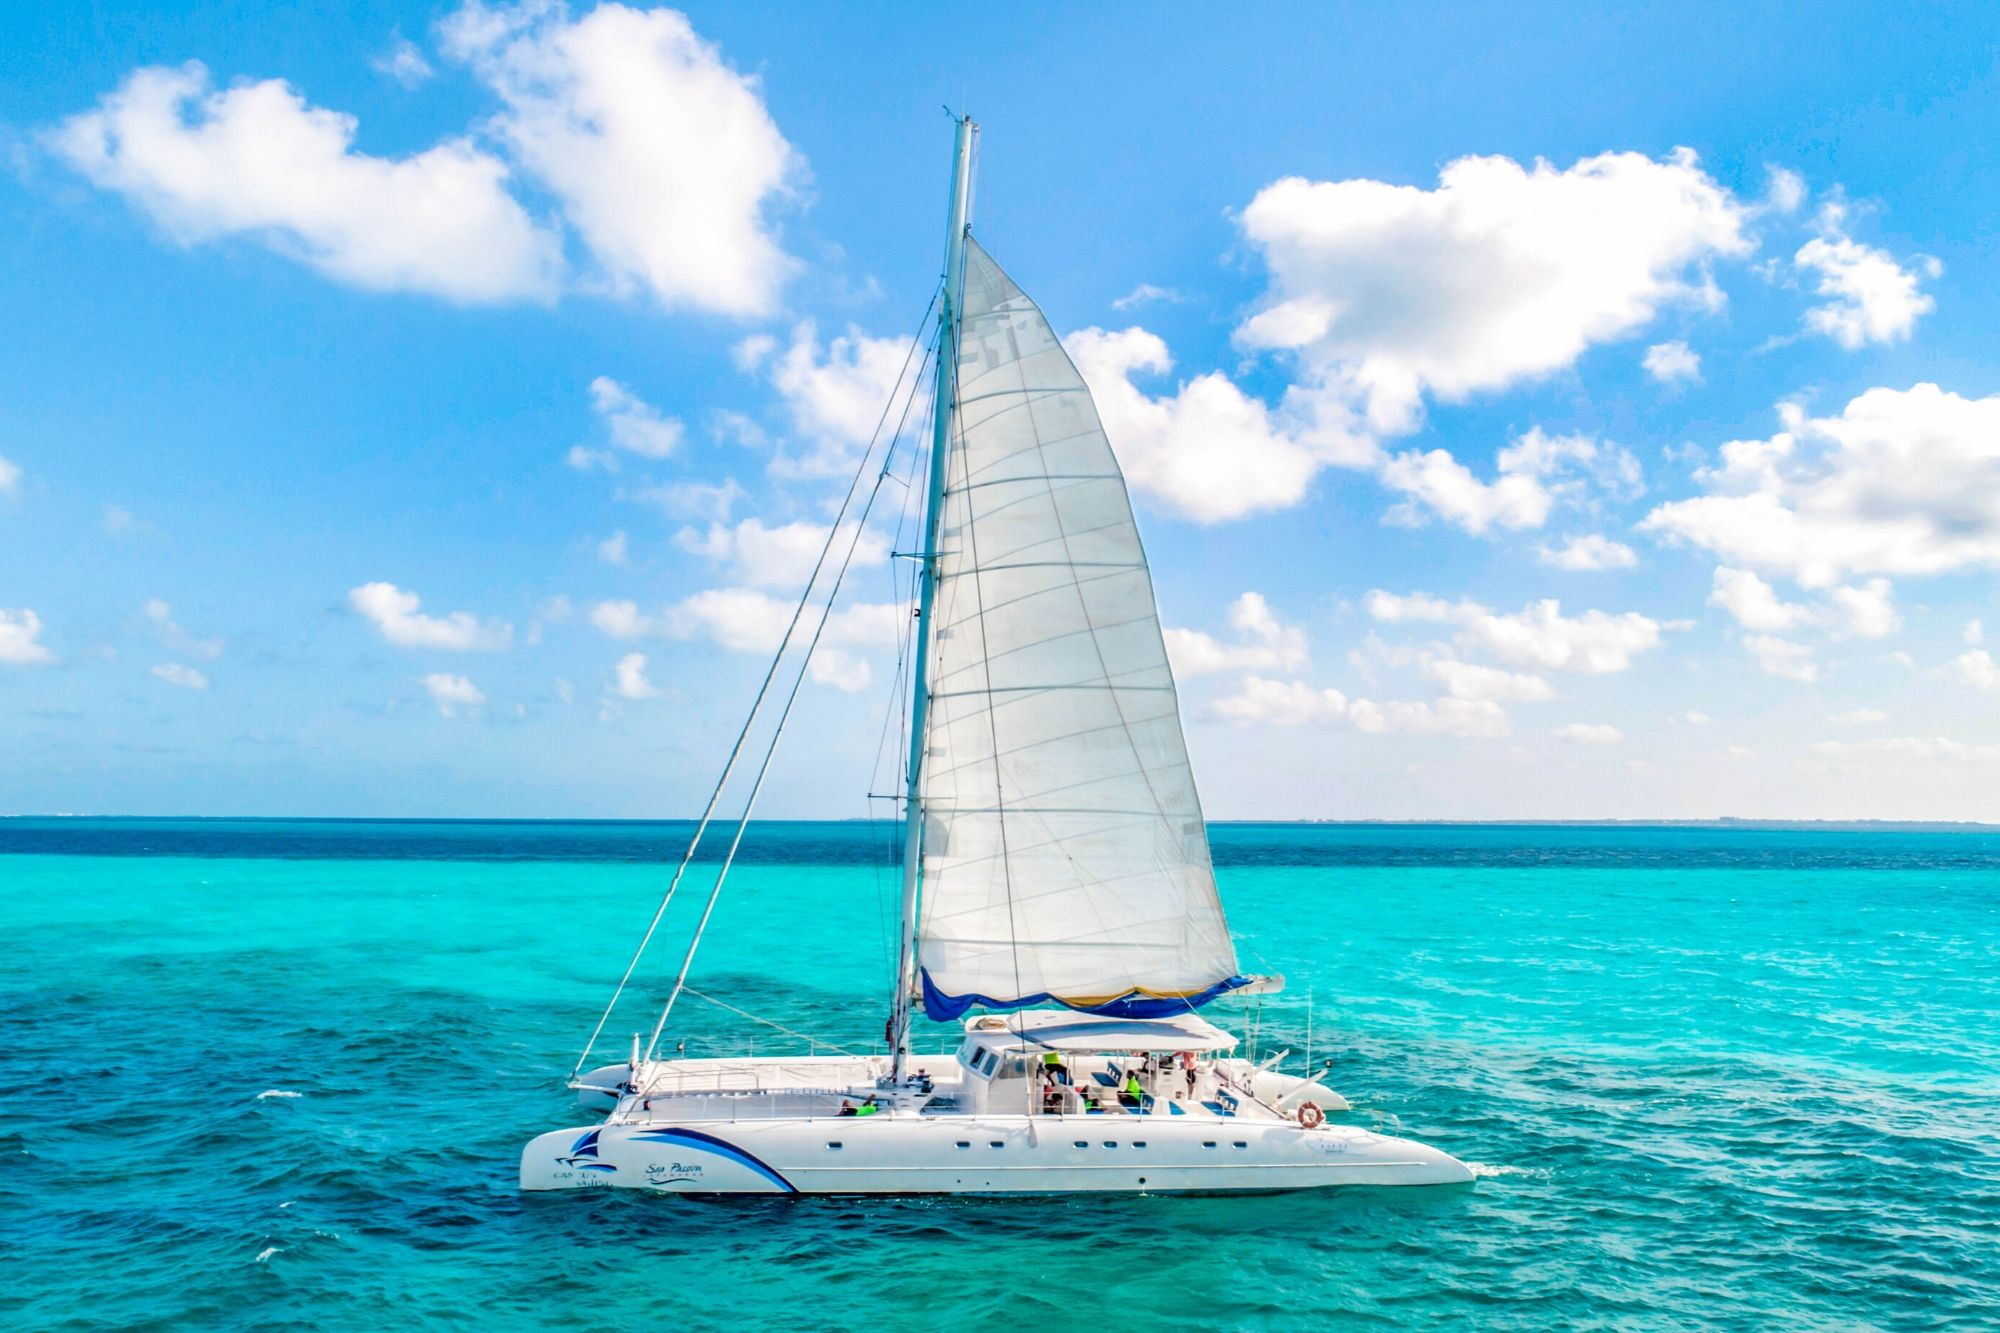 7 Sea Passion III - Isla Mujeres Catamaran Tour - Cancun Sailing